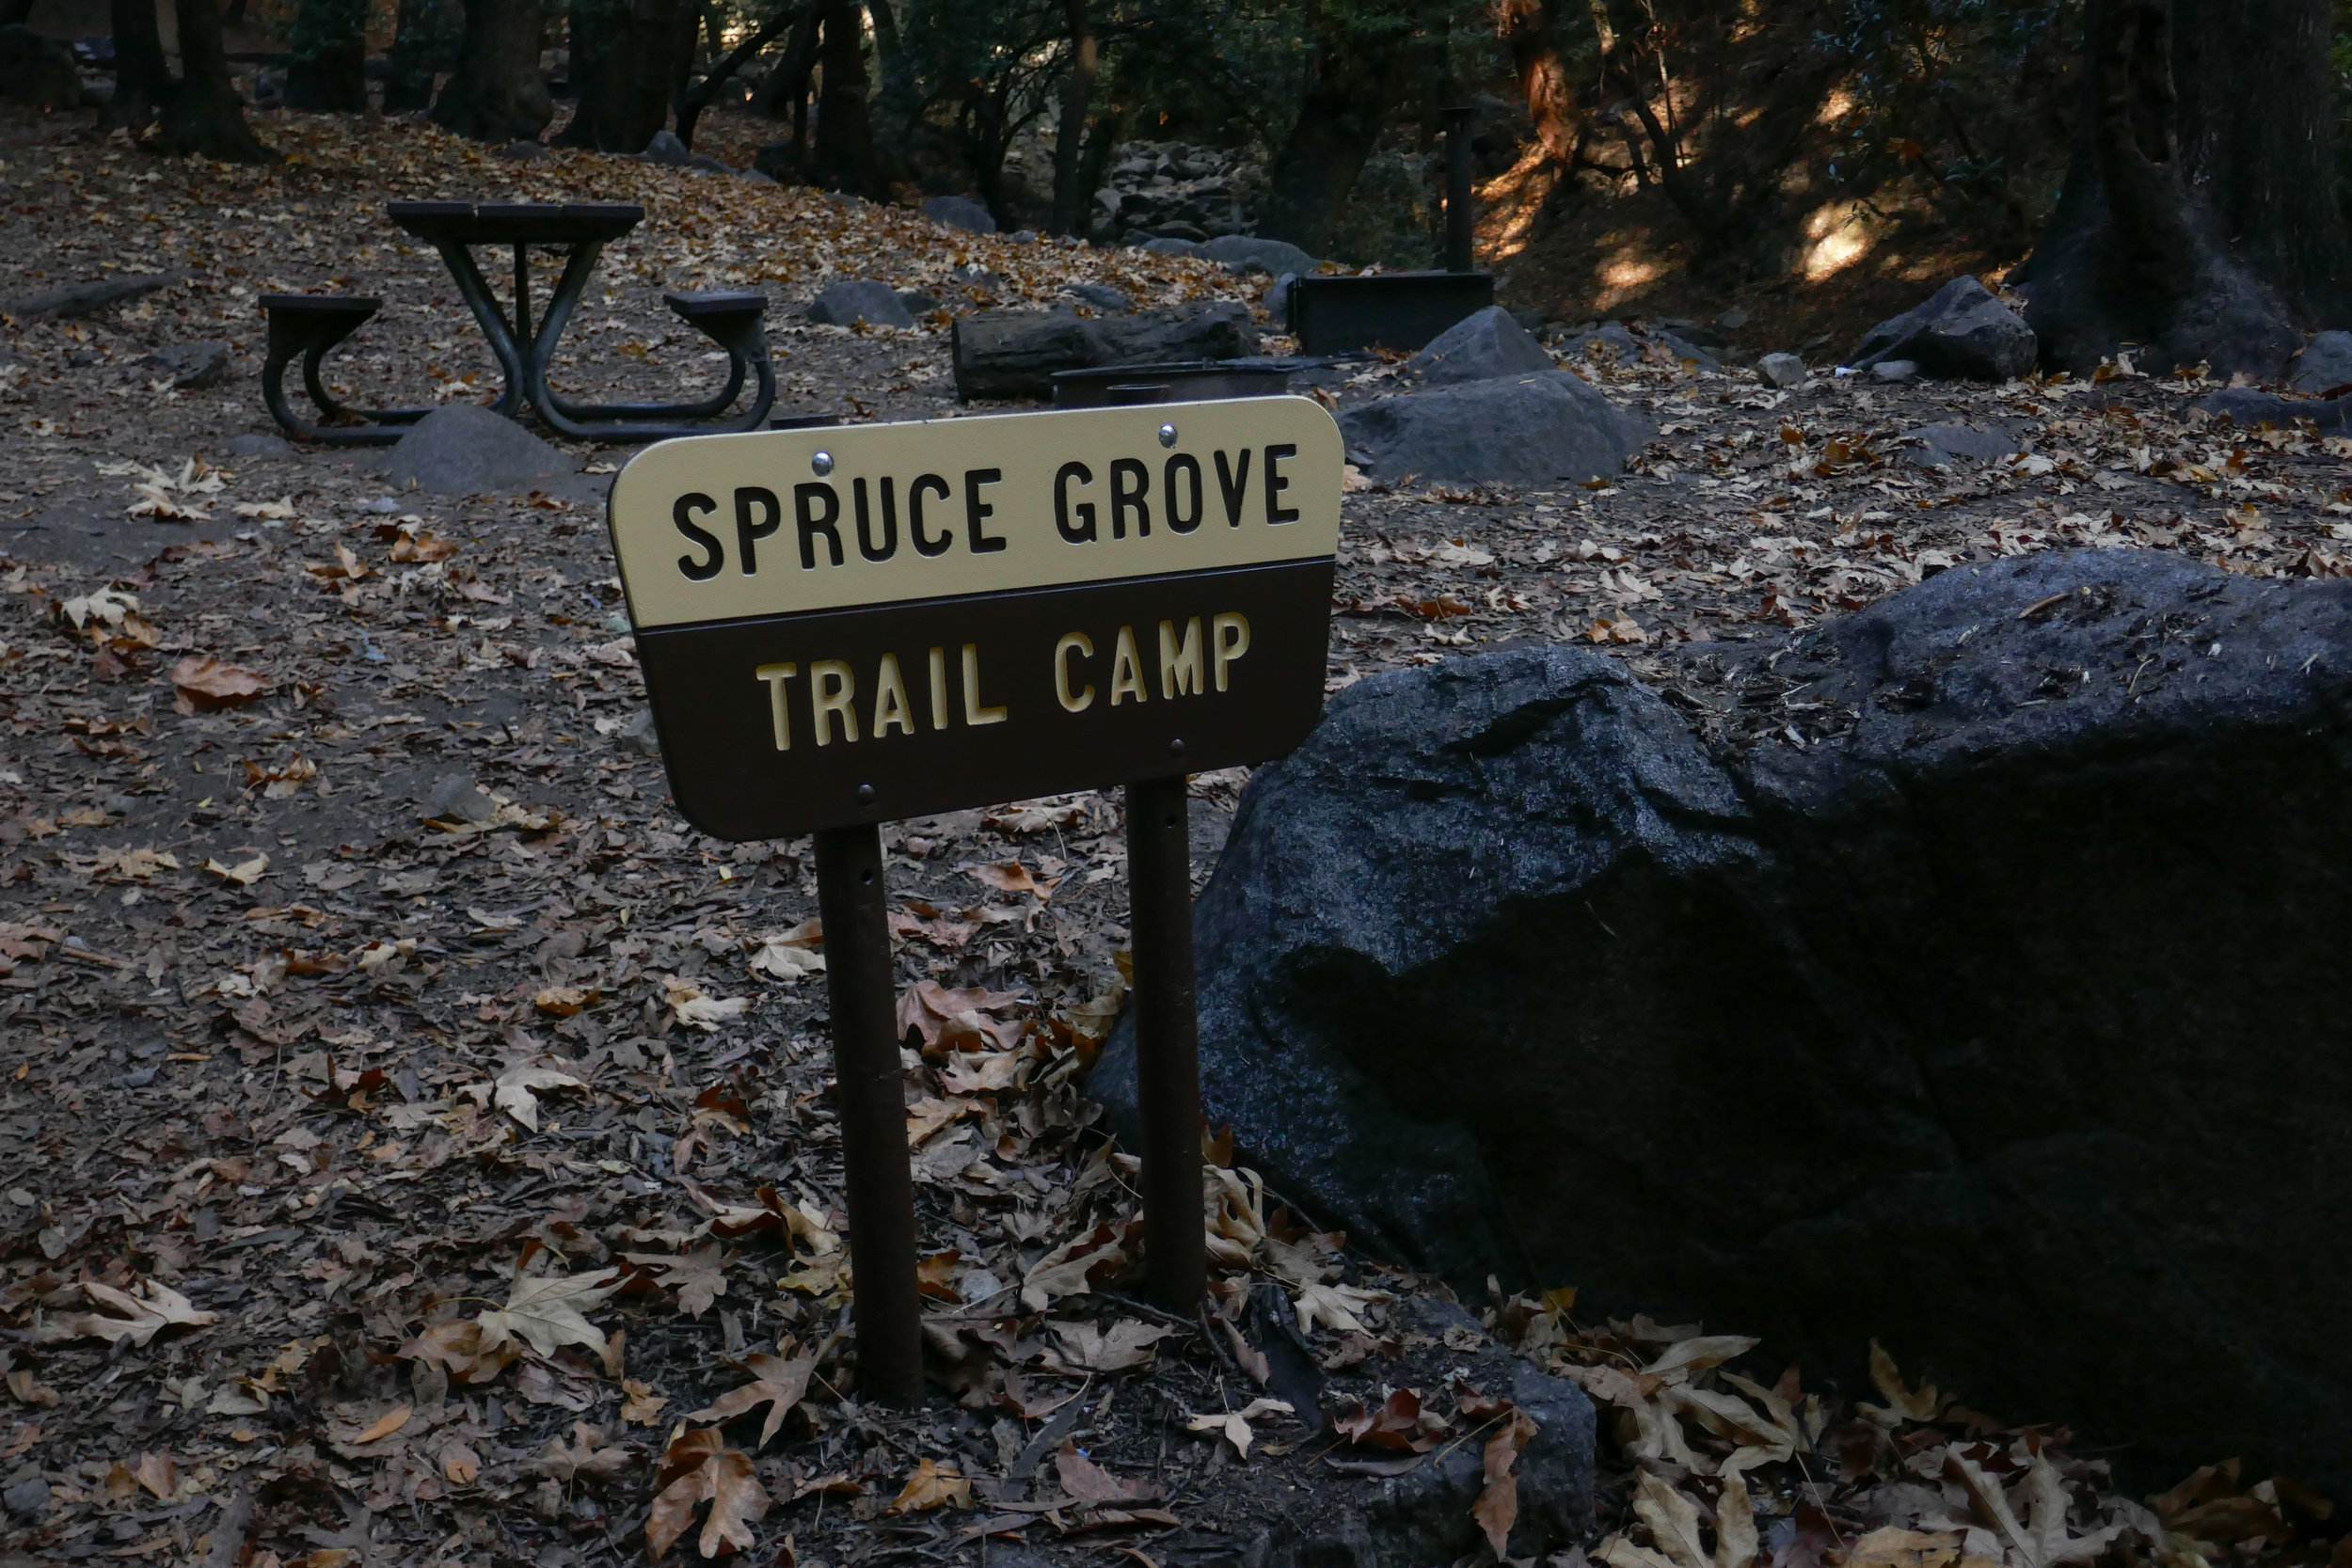 Spruce Grove camp. There are bathrooms here.